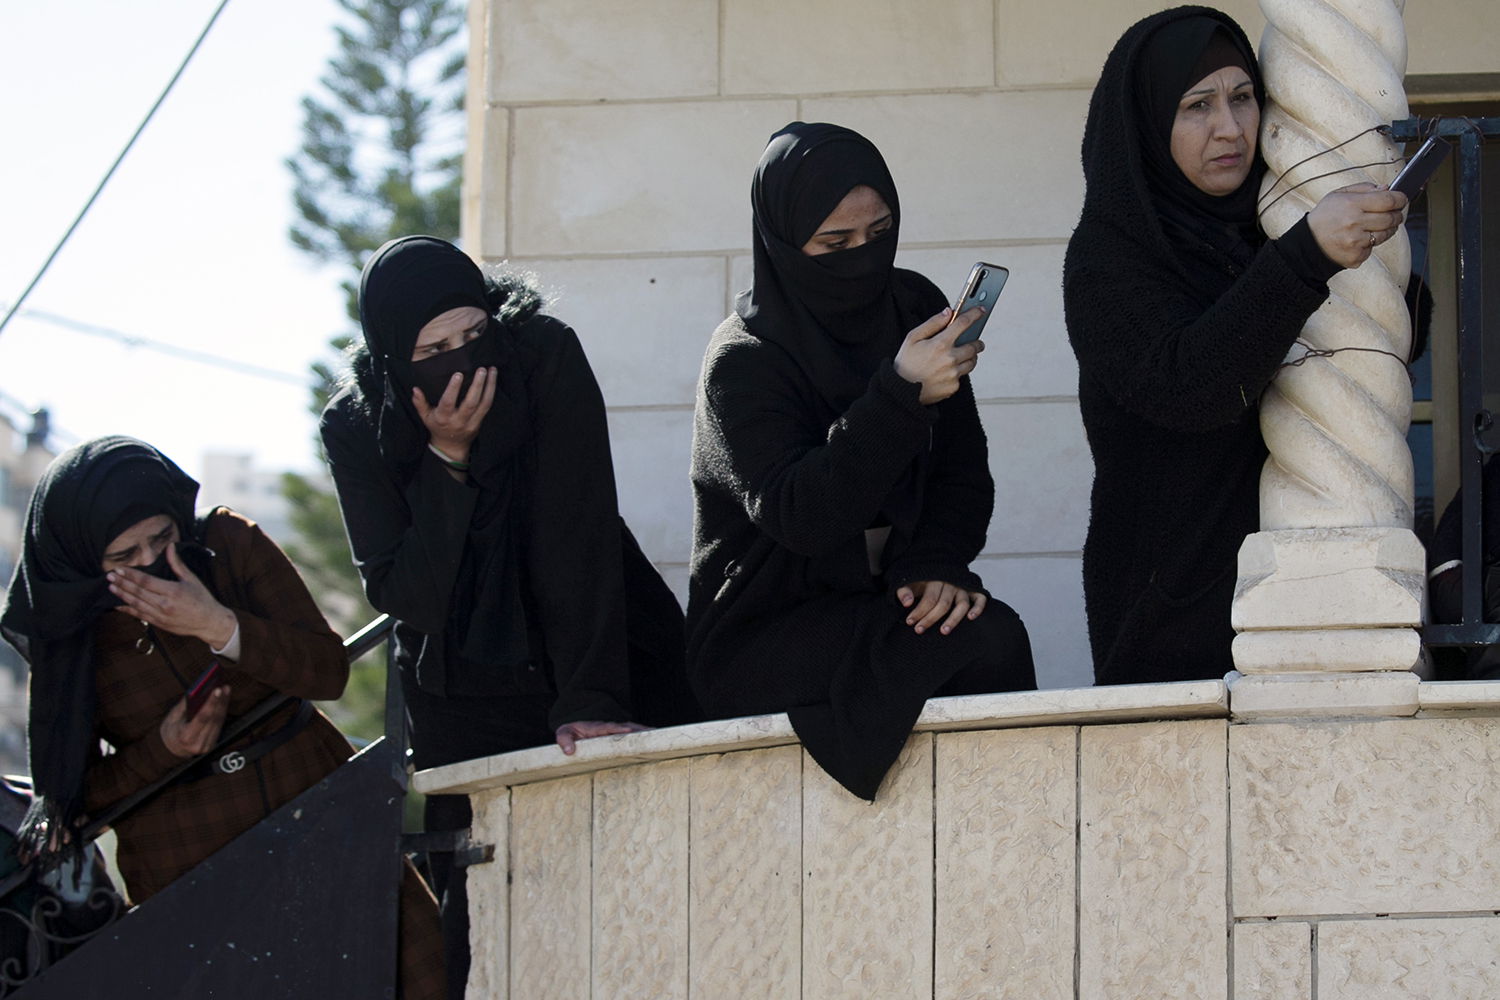 Palestinian women take photos with their phones during the funeral of 19-year-old Yazan Abu Tabikh who was killed by Israeli forces in Jenin, in the north of the occupied West Bank, on Feb. 6. JAAFAR ASHTIYEH/AFP via Getty Images